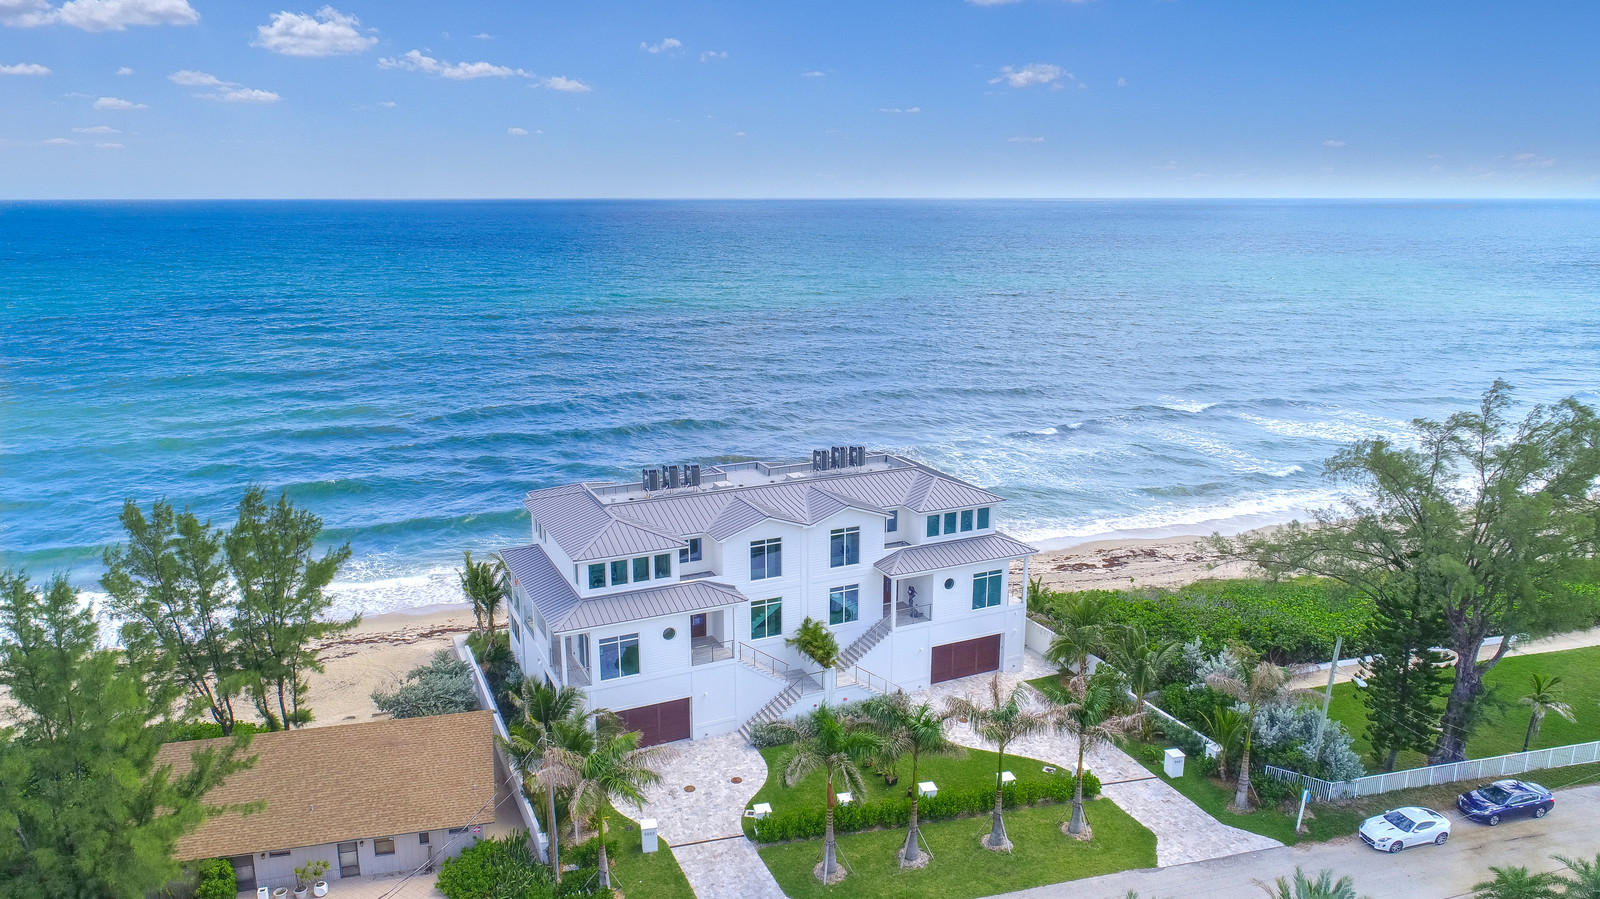 Home for sale in Palm Beach Shore Acres Ocean Ridge Florida